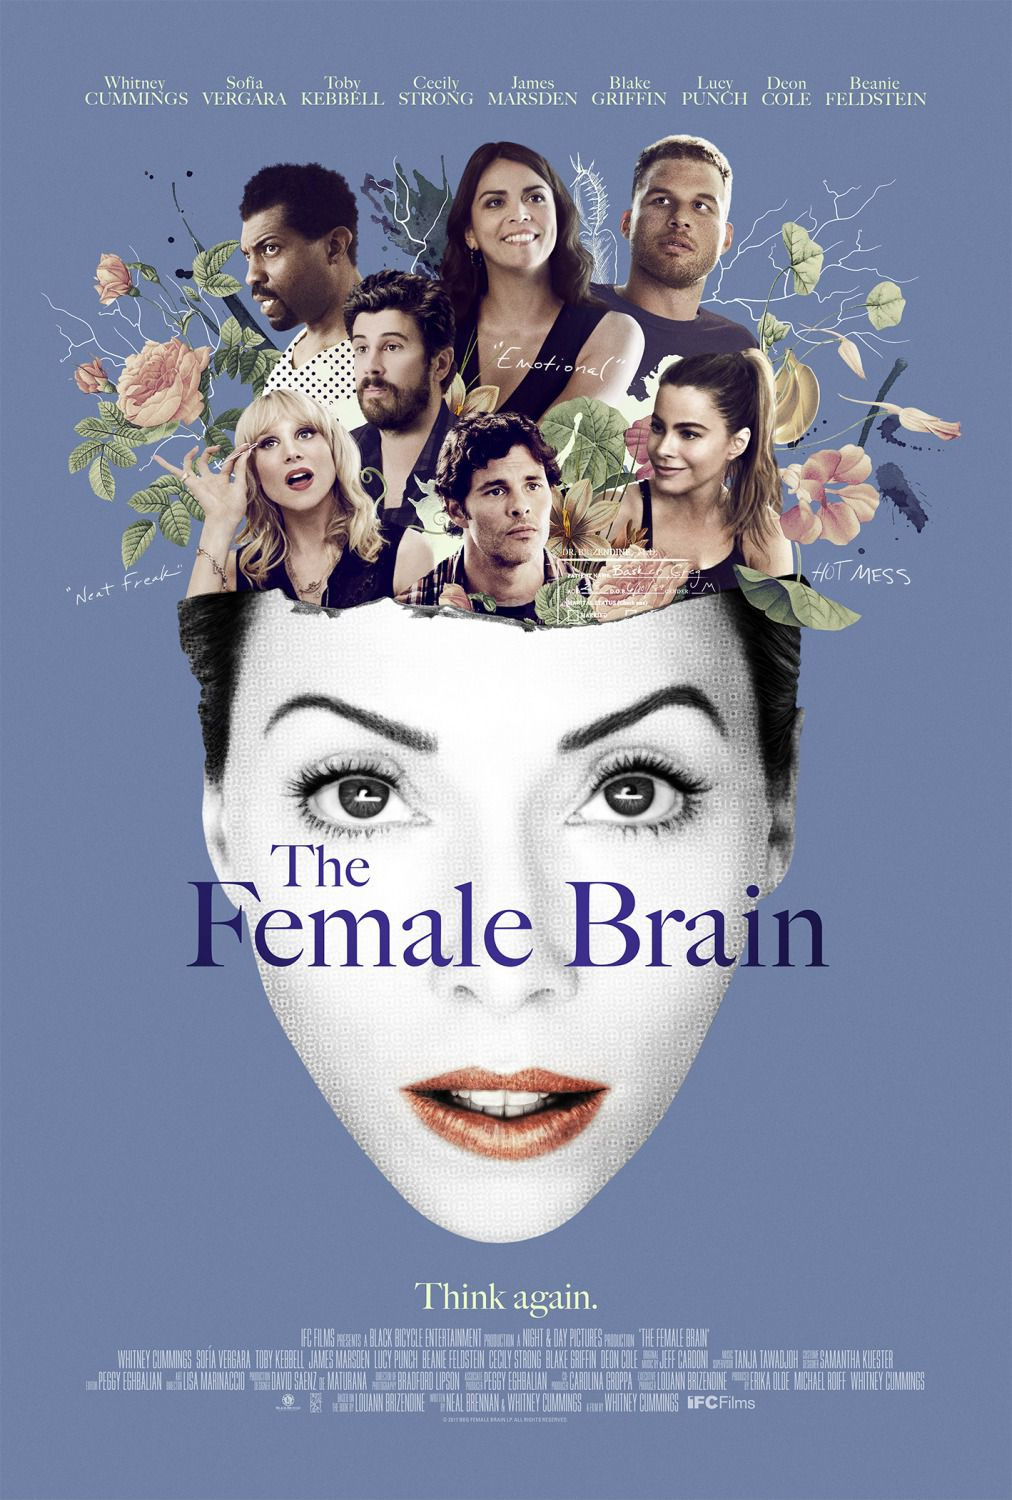 Female Brain - Whitney Cummings, Sofia Vergara, Toby Kebbell, Cecily Strong, James Marsden, Blake Griffin, Lucy Punch, Deon Cole, Beanie Feldstein - poster 2018